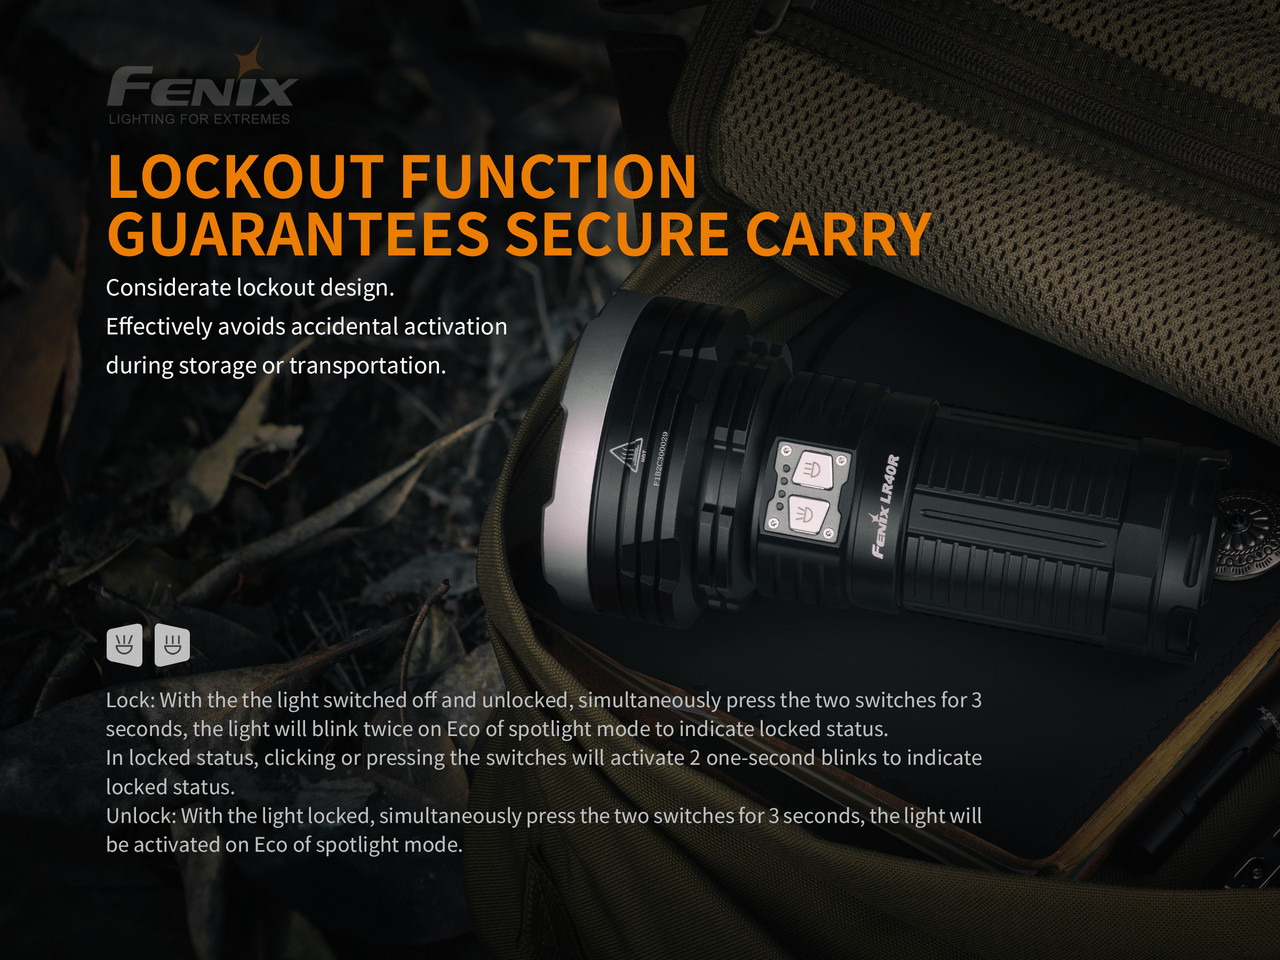 Fenix LR40R 12,000 Lumen High Performance Rechargable Search Light (LR40R)